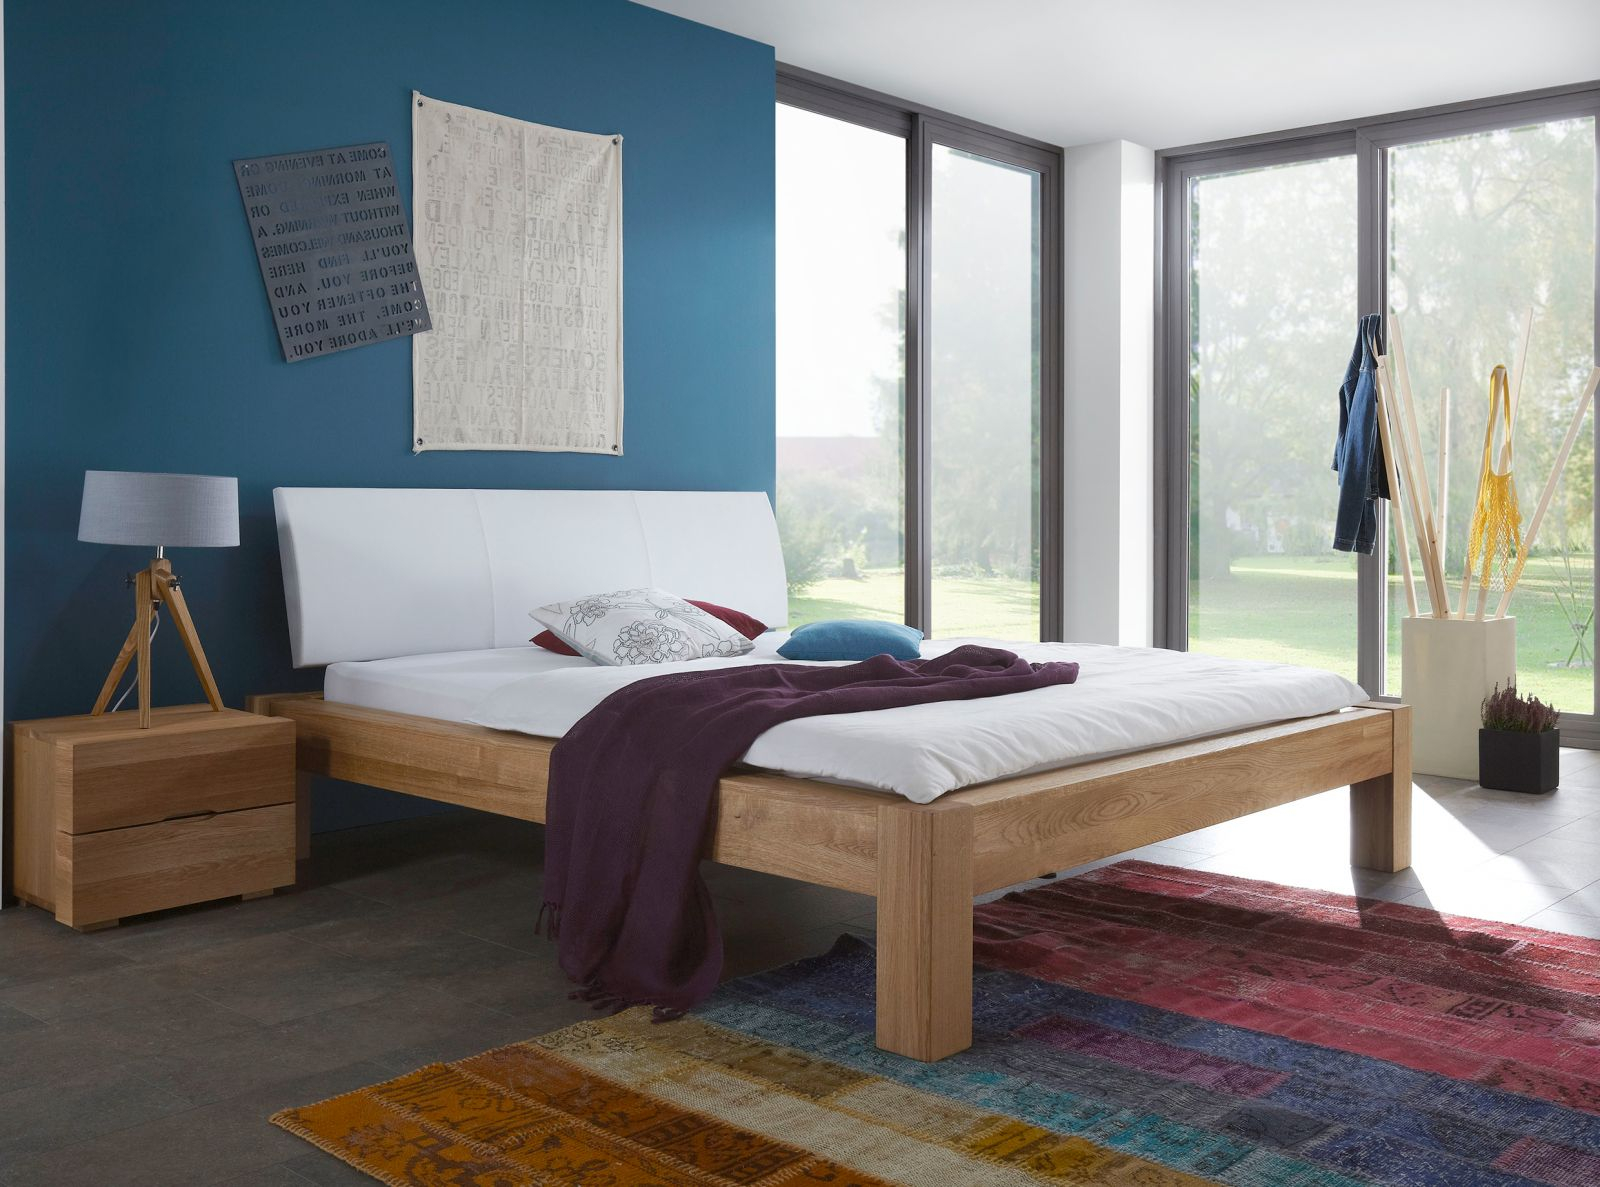 atlantik wasserbetten wasserbett kiel wildeiche massivholz select. Black Bedroom Furniture Sets. Home Design Ideas